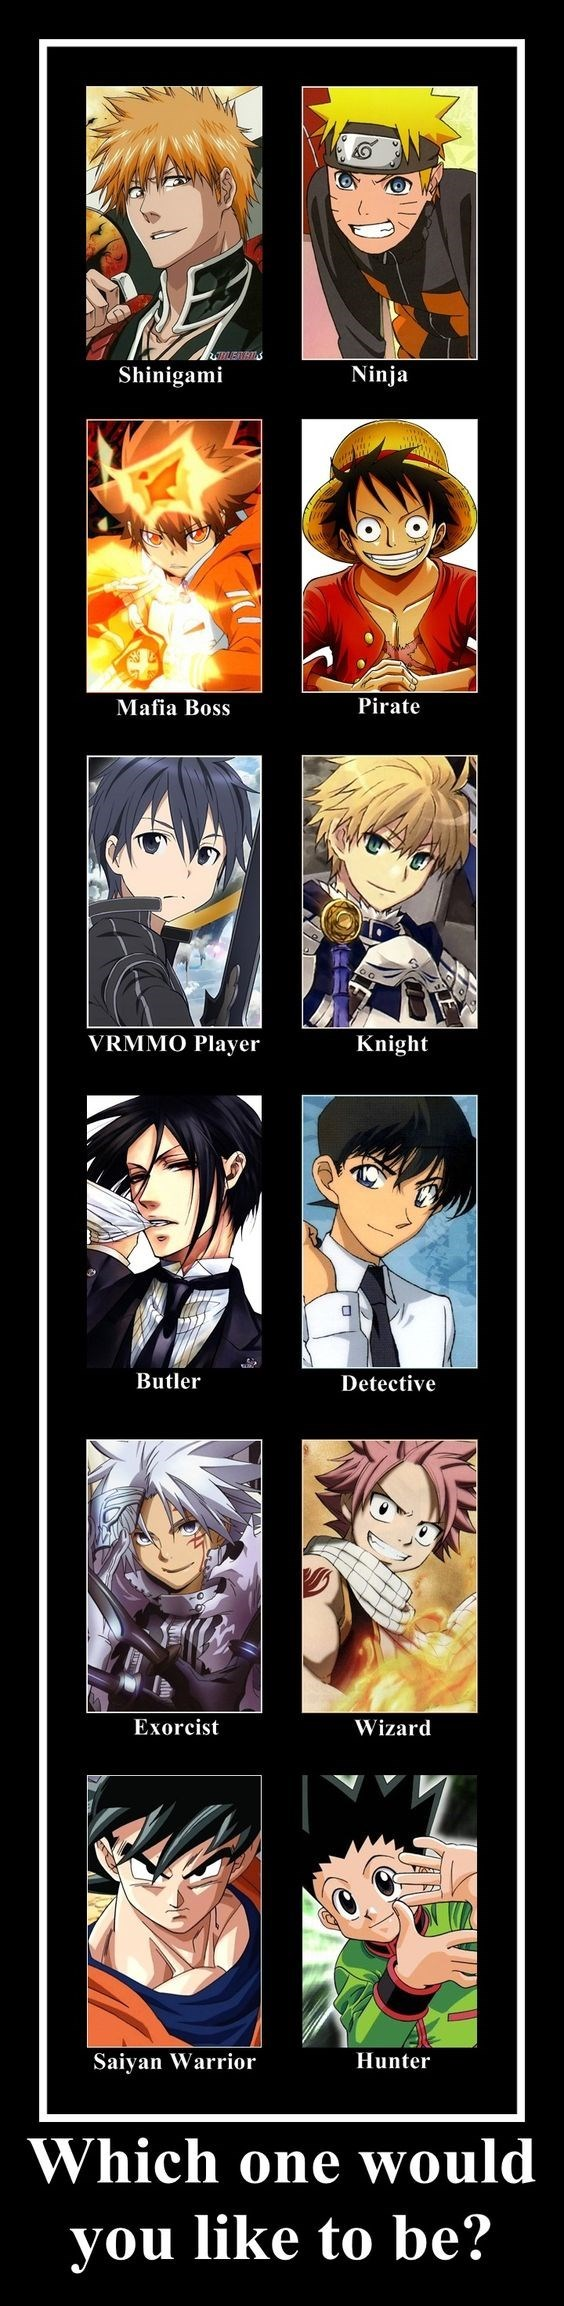 anime memes which anime character do you want to be